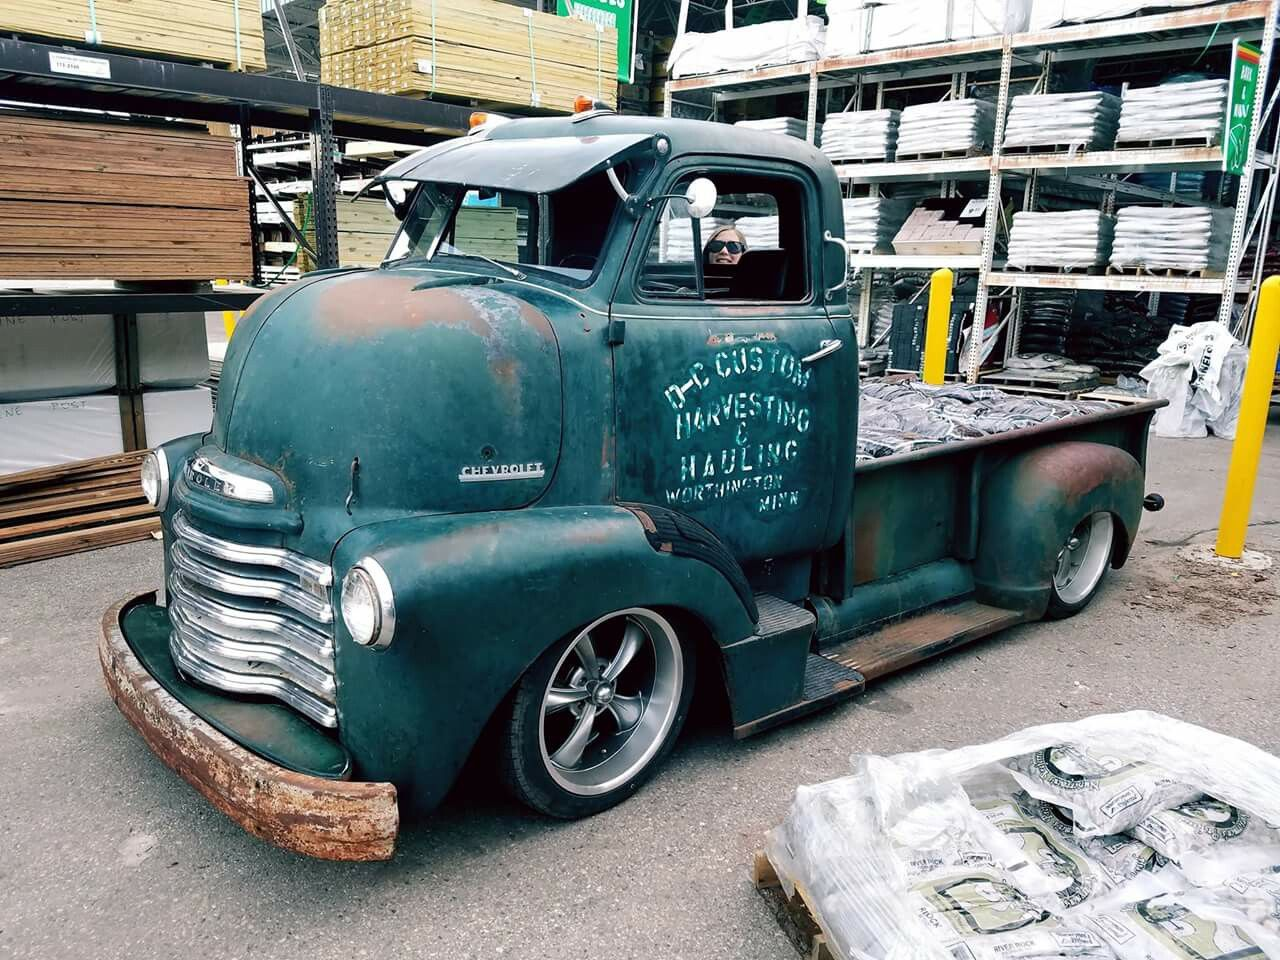 Pin by Joey B. on Kool Old Trucks | Pinterest | Cars, Rats and ...